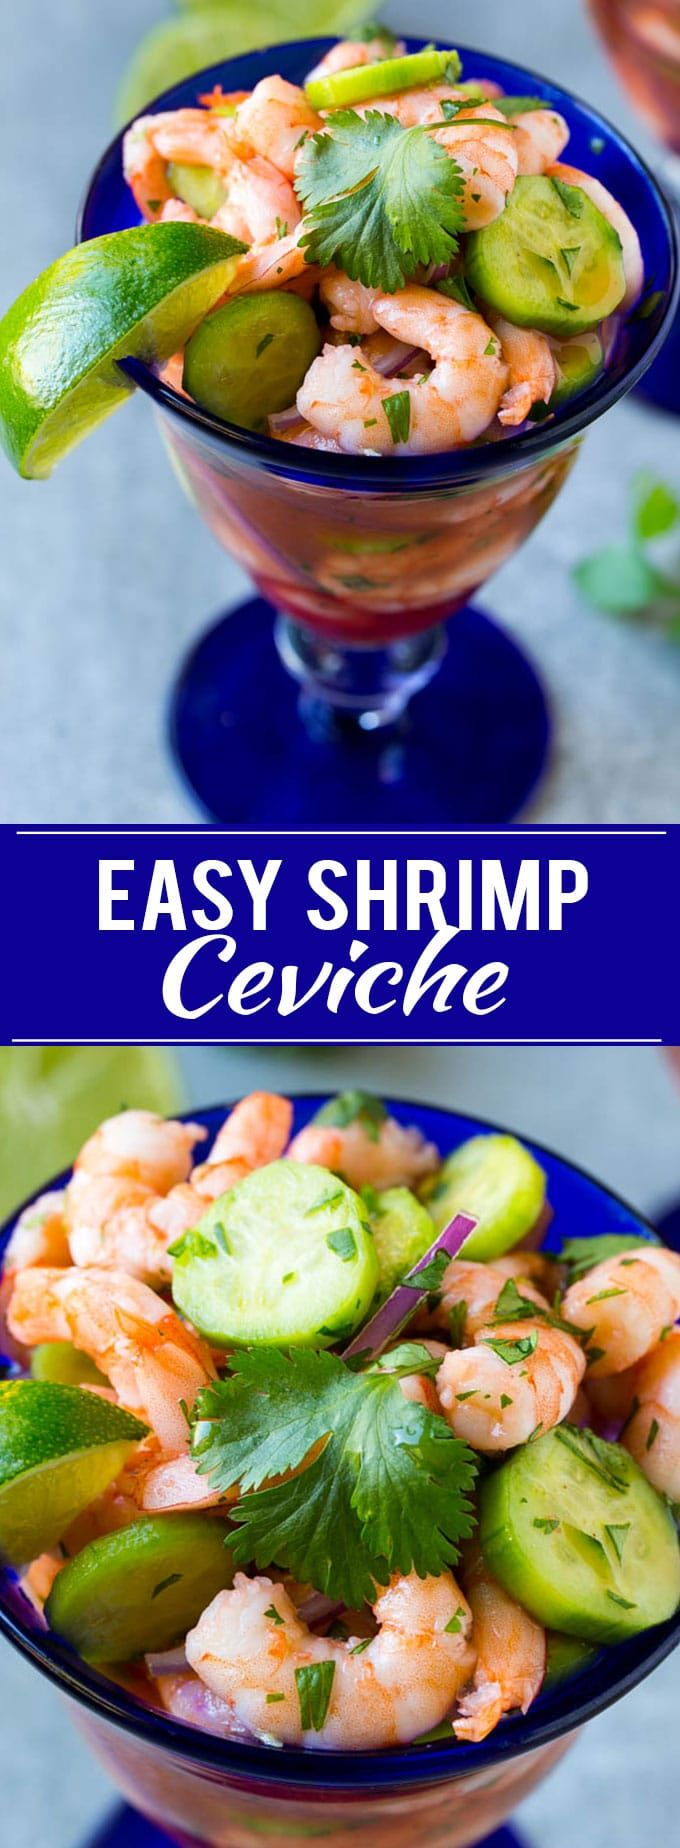 Best 25 shrimp appetizers ideas on pinterest recipes for Low carb fish recipes